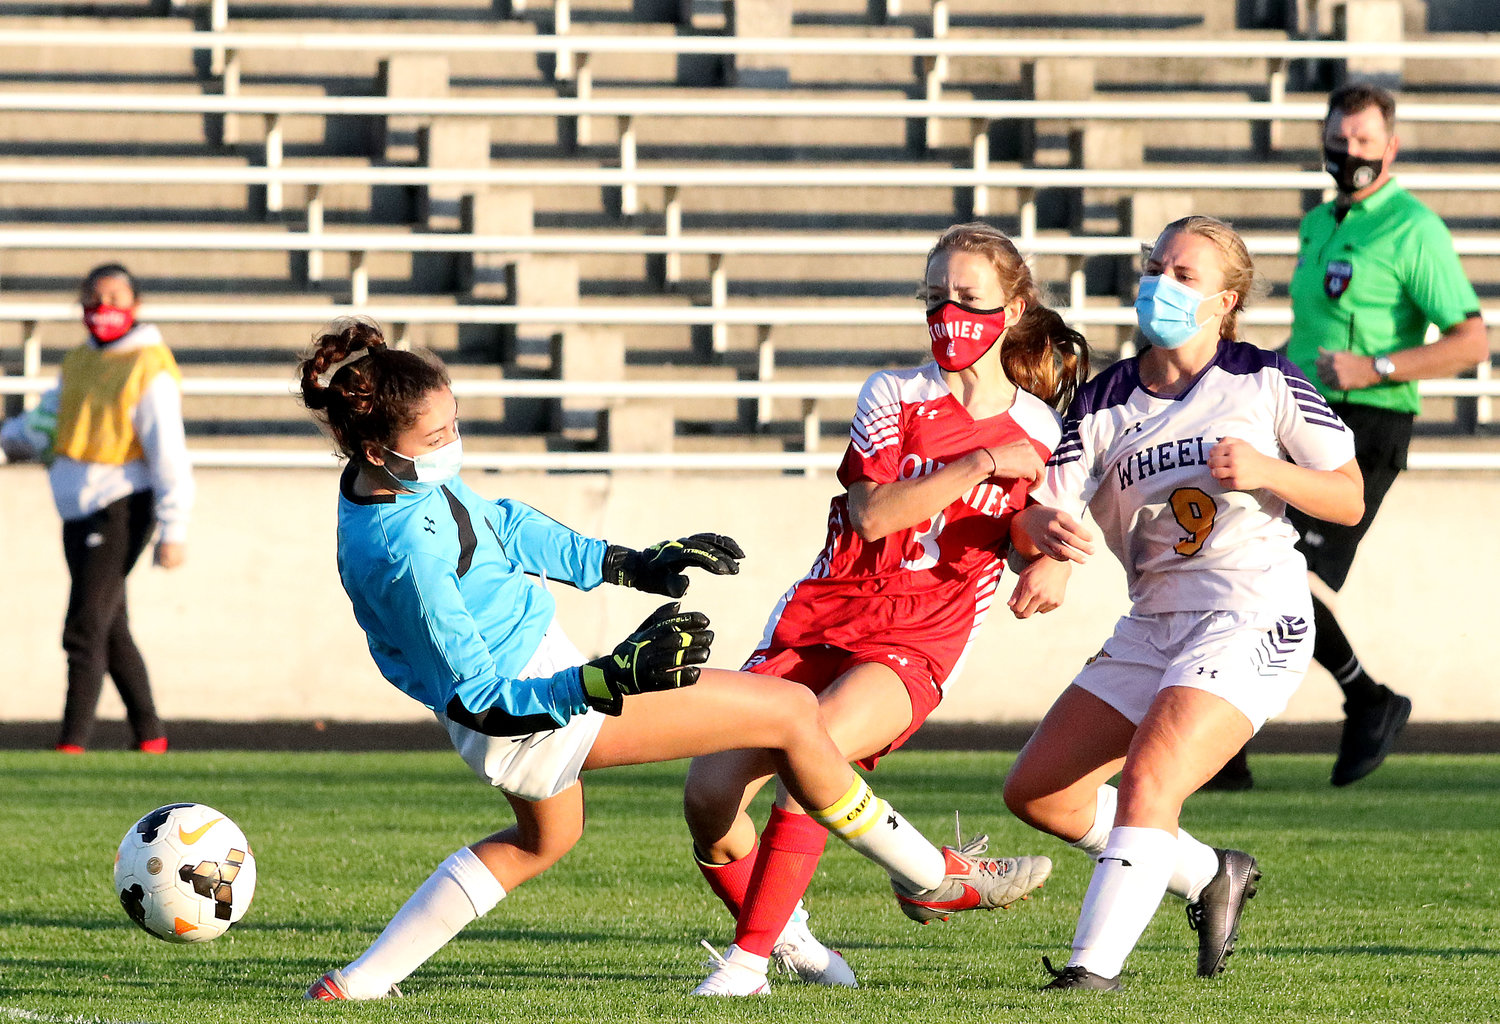 Jordyn Brogan scores the first goal of the game and what proved the deciding tally for the EPHS girls' soccer team in its 2020 season opener against the Wheeler School, October 9, at Pierce Stadium.